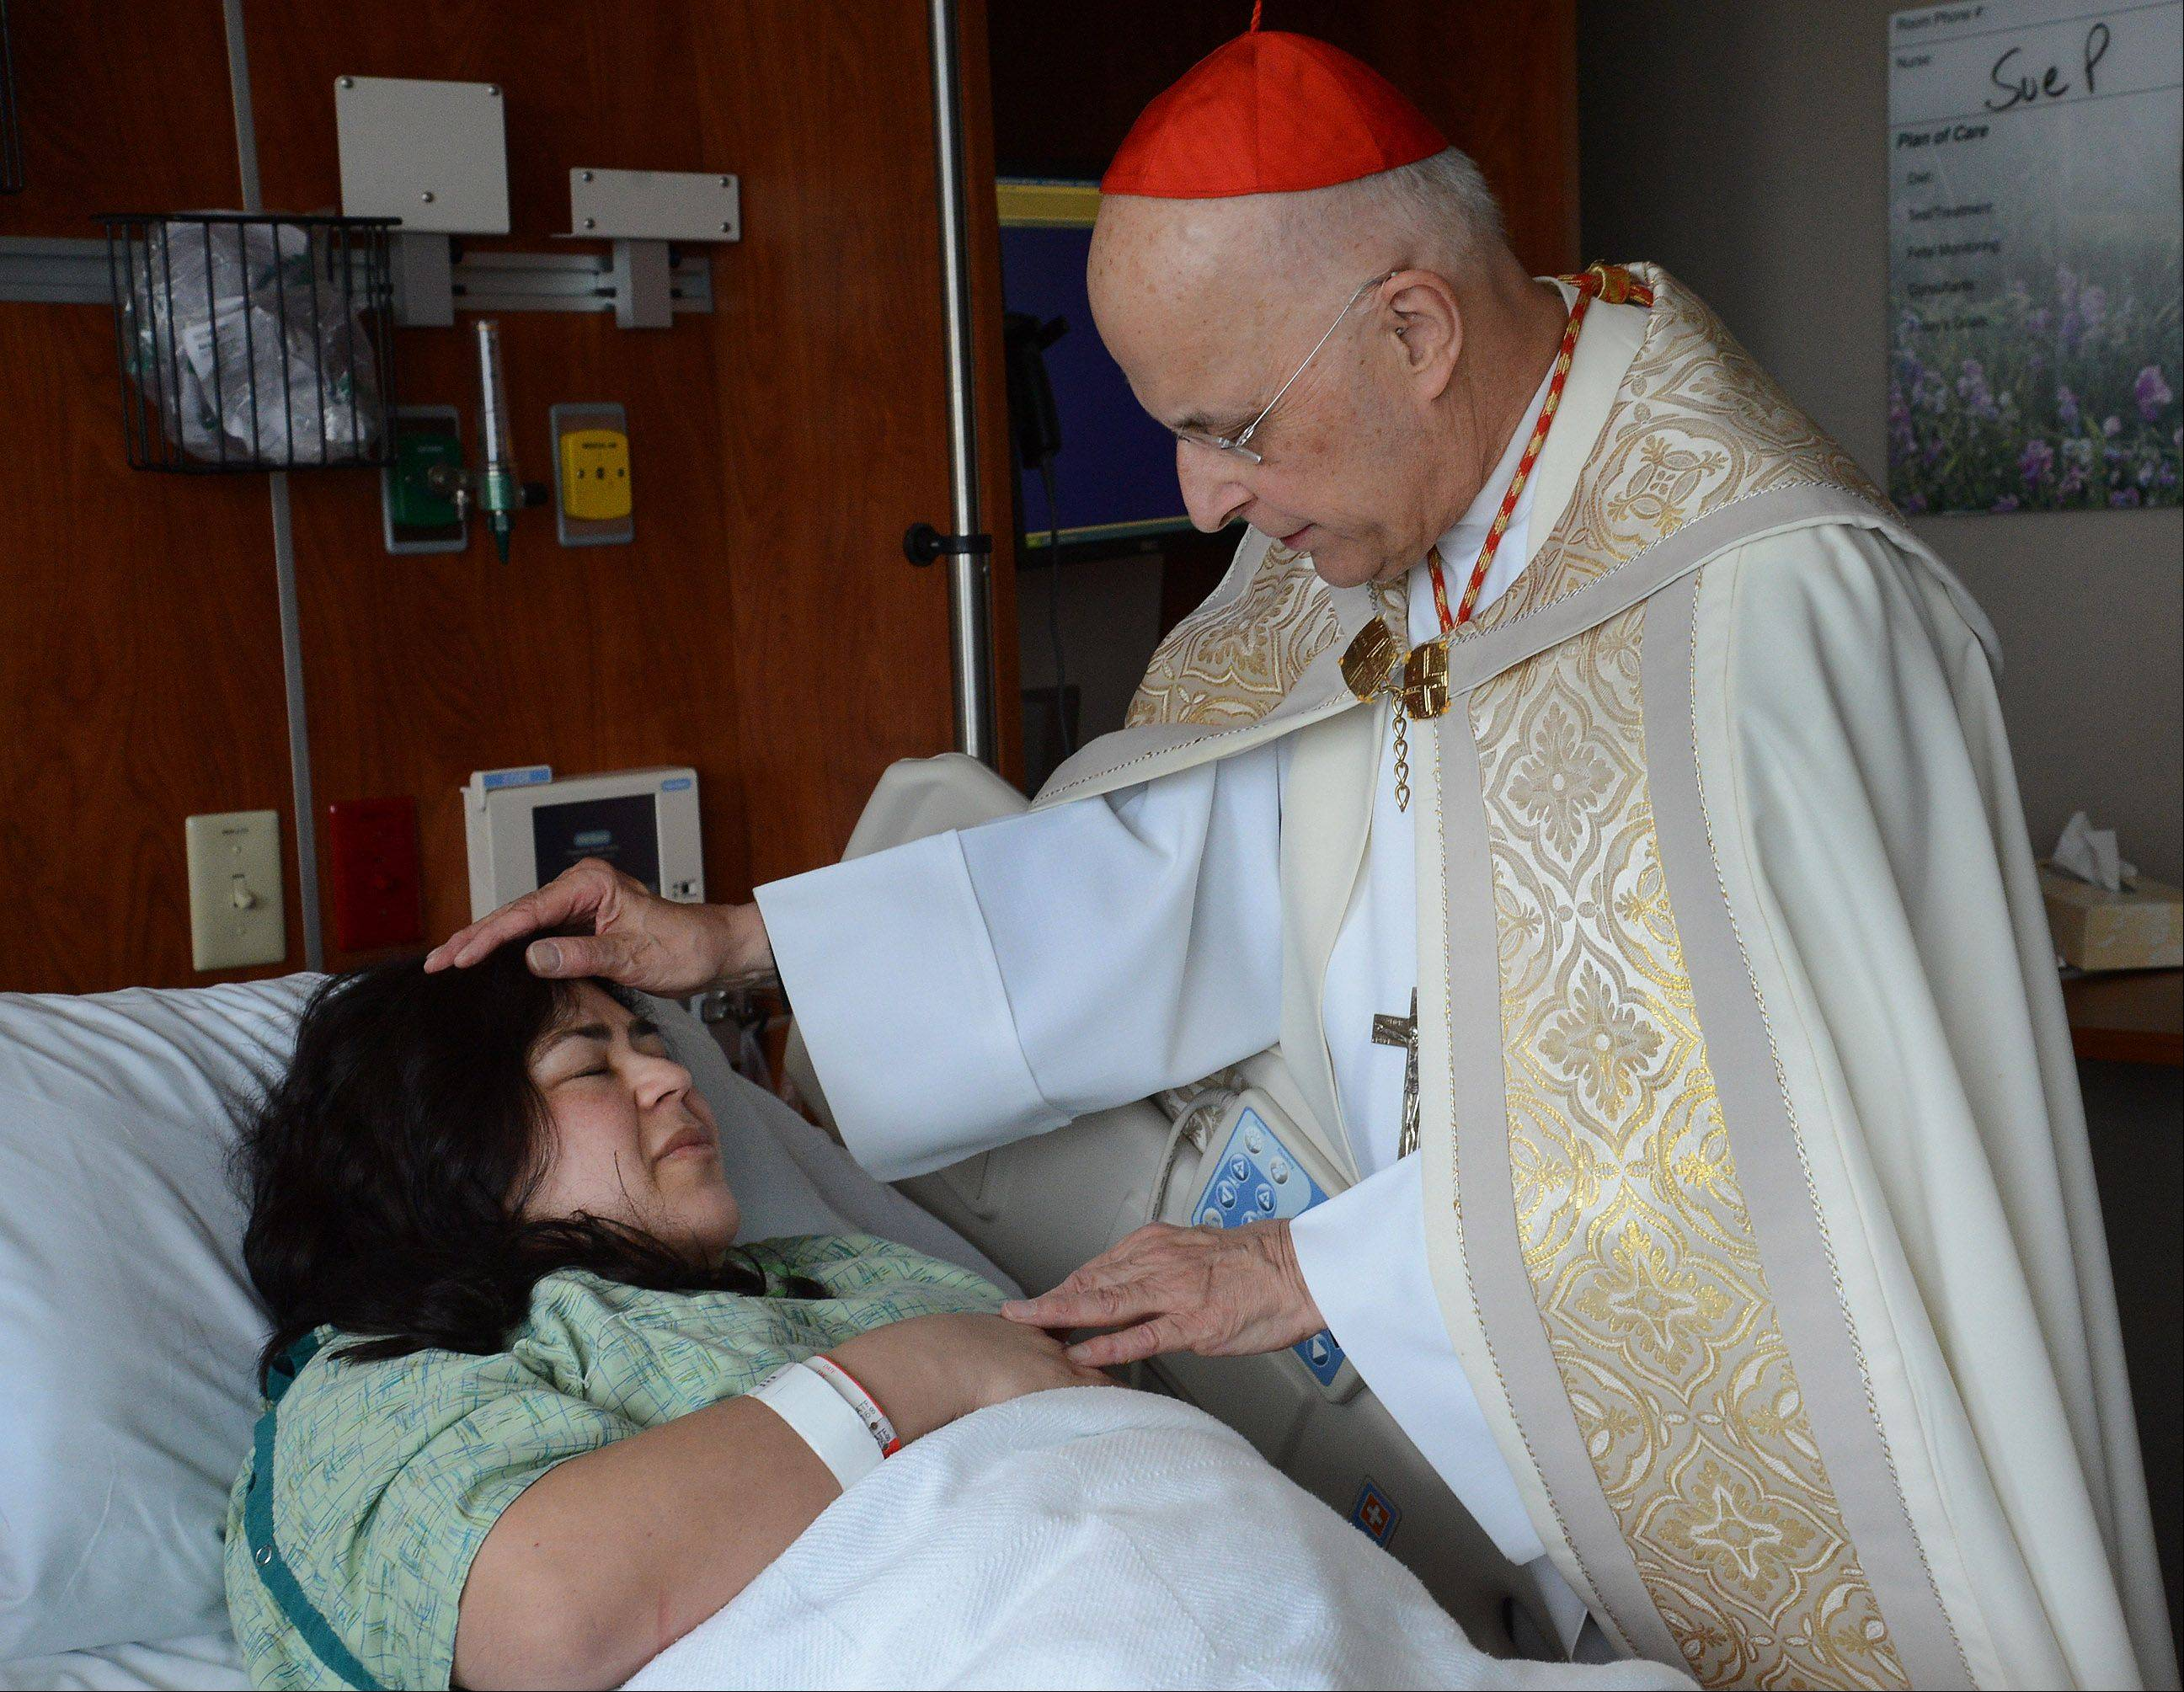 Cardinal Francis George gives a blessing to Maria Mora of Carpentersville at the new Alexian Brothers Women and Children's Hospital in Hoffman Estates. George visited the hospital Monday for the first time.